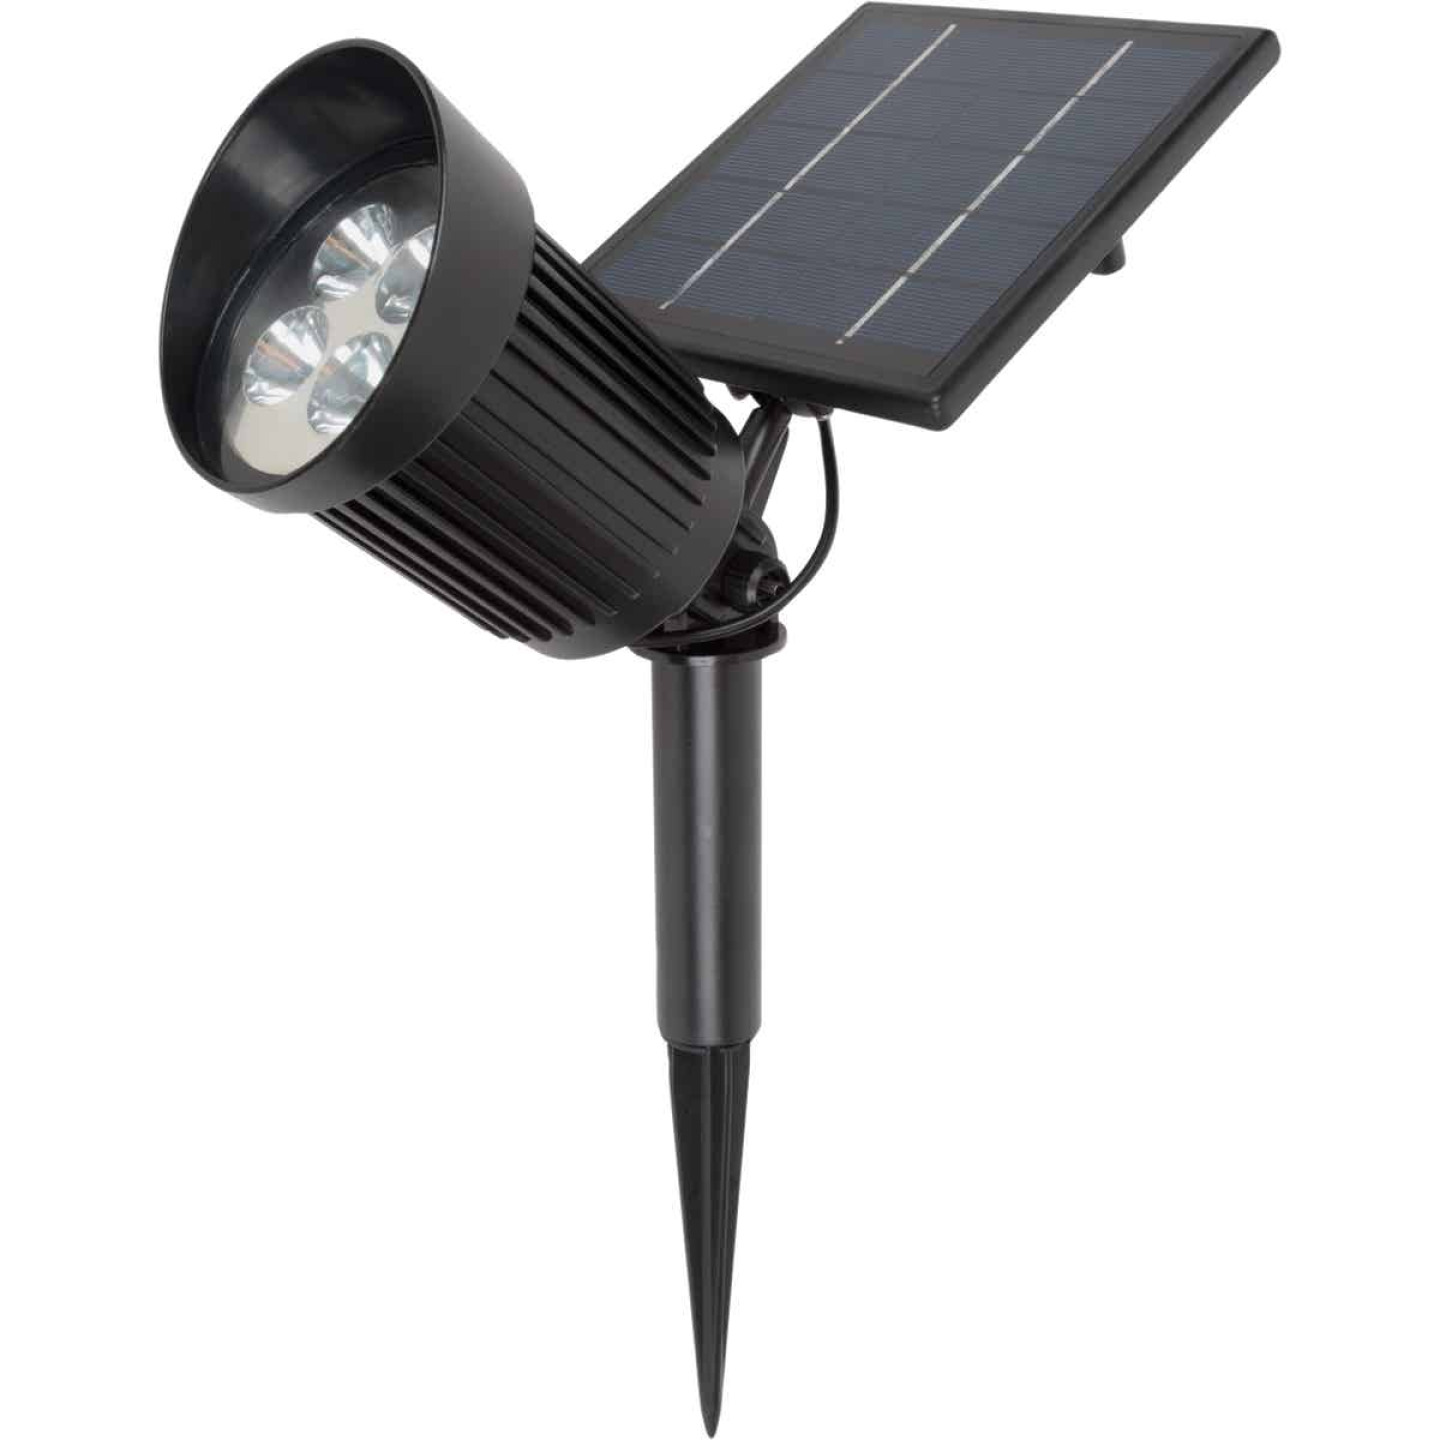 Fusion Black 8 SMD LED Up to 8-Hour Run Time Solar Spotlight Image 1